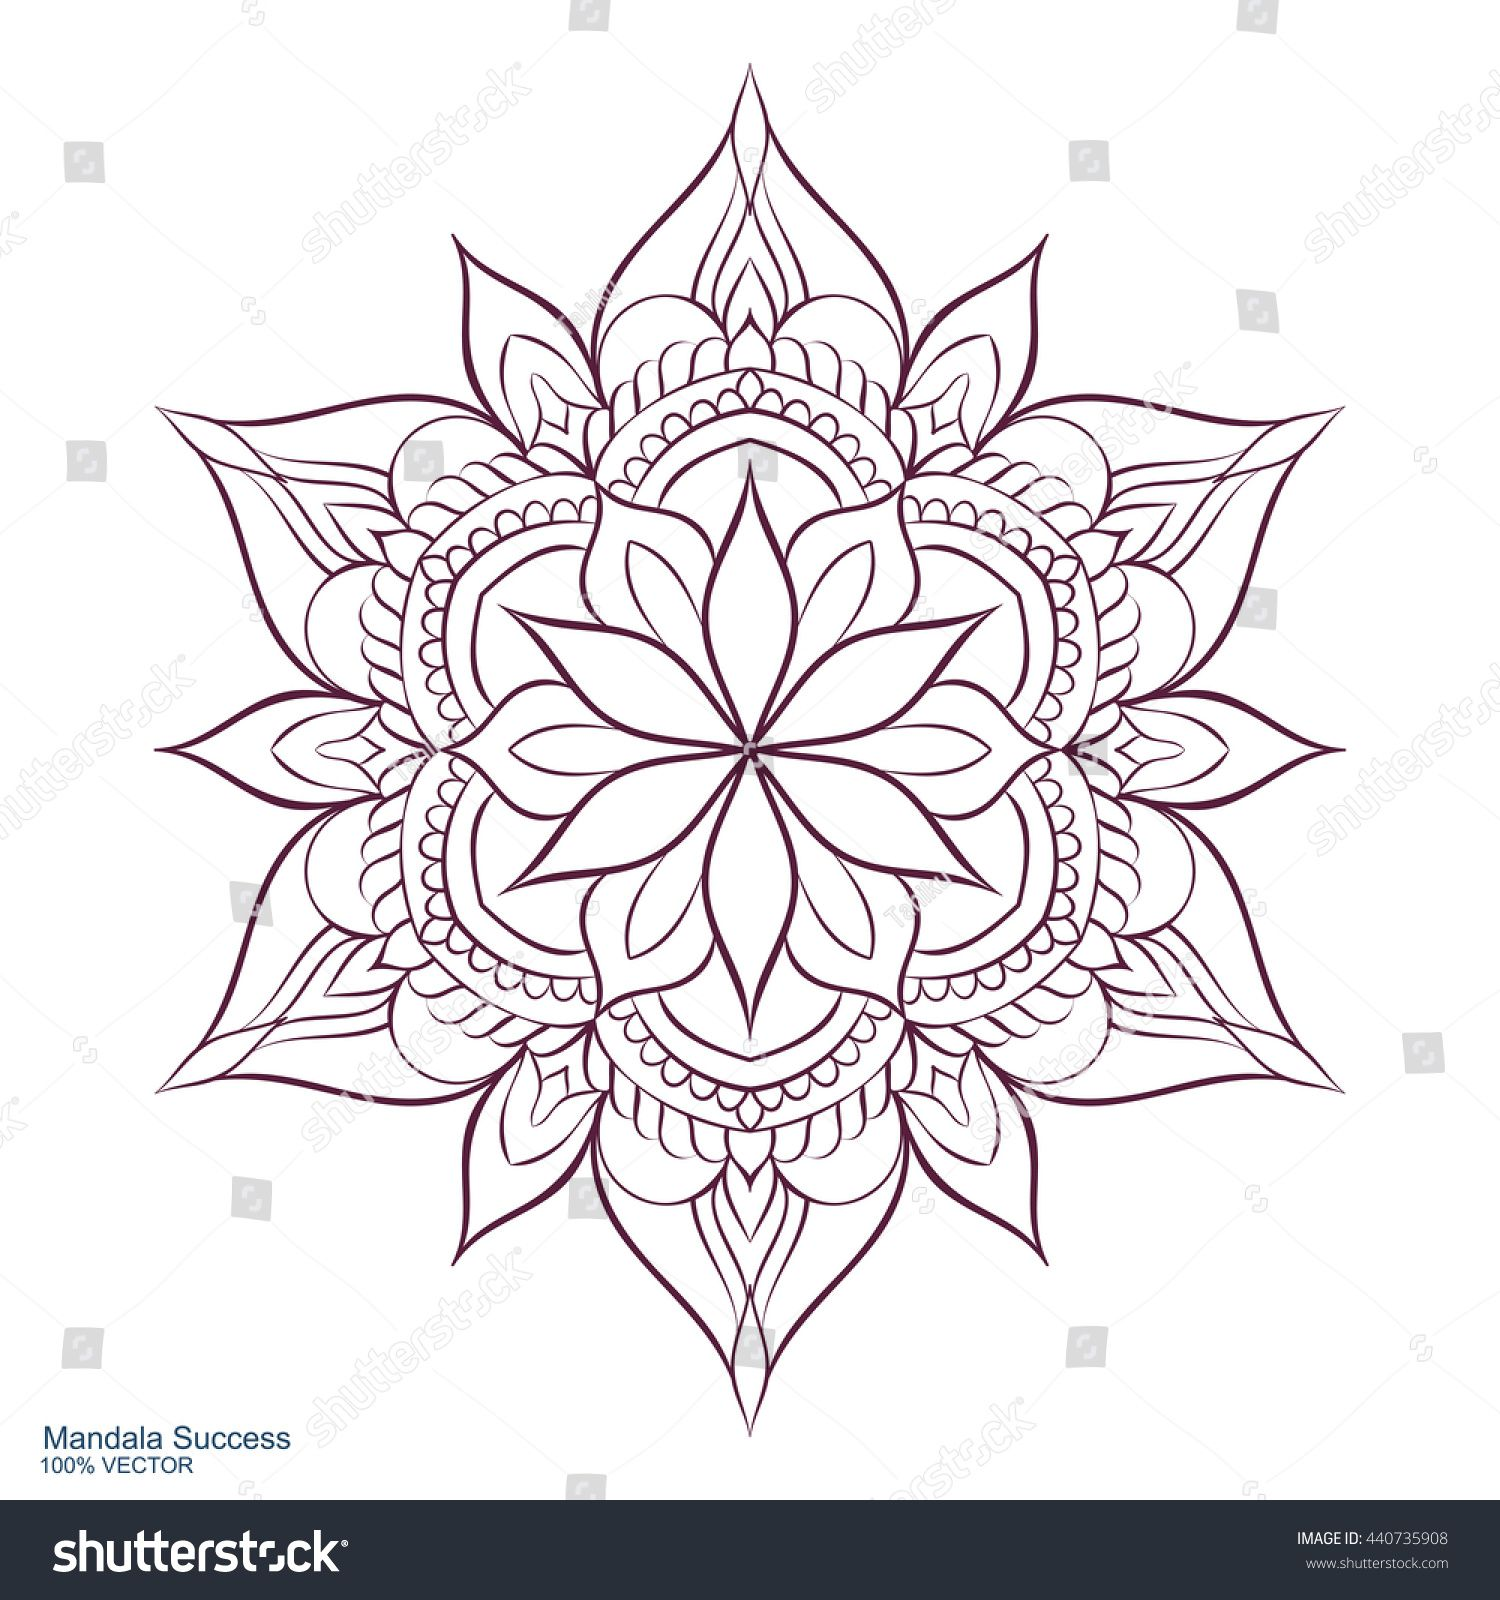 Mandala Success. Circular ornament on a white background. Handmade drawing. Arabic, Oriental, Indian decorative element. Coloring book for adults. #mandala